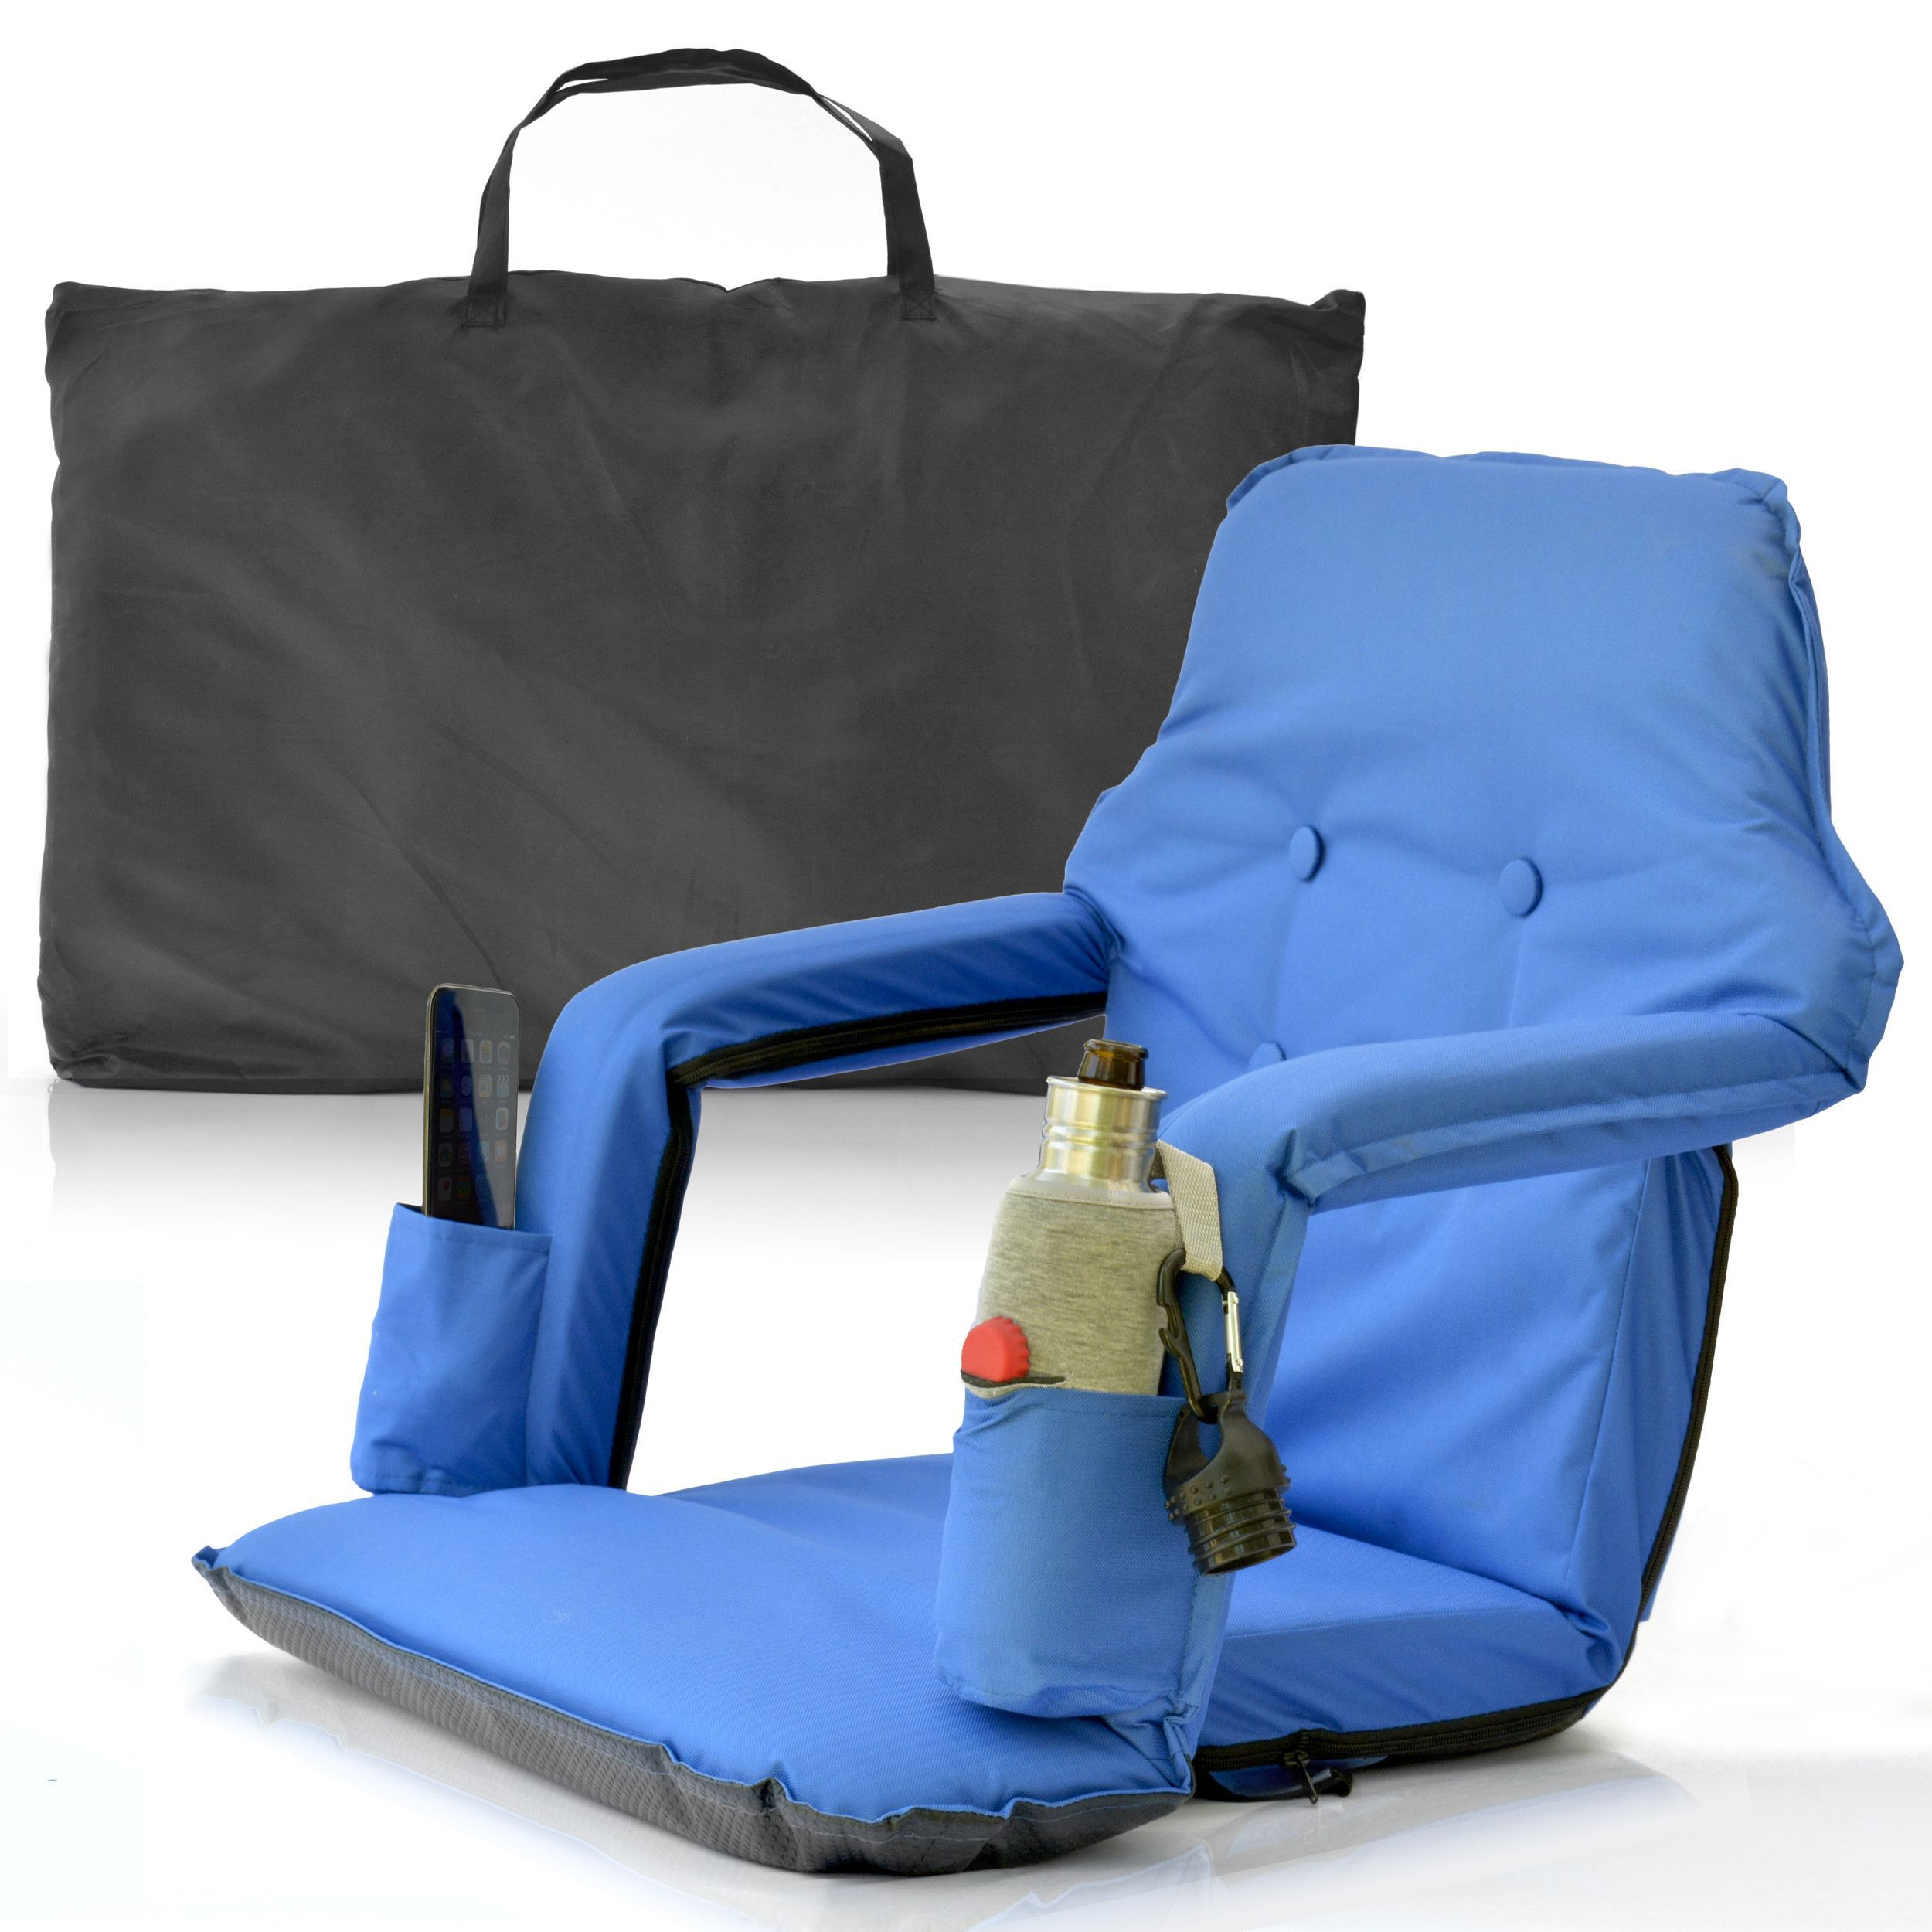 Portable Stadium Chair For Bleachers Extra Wide Water